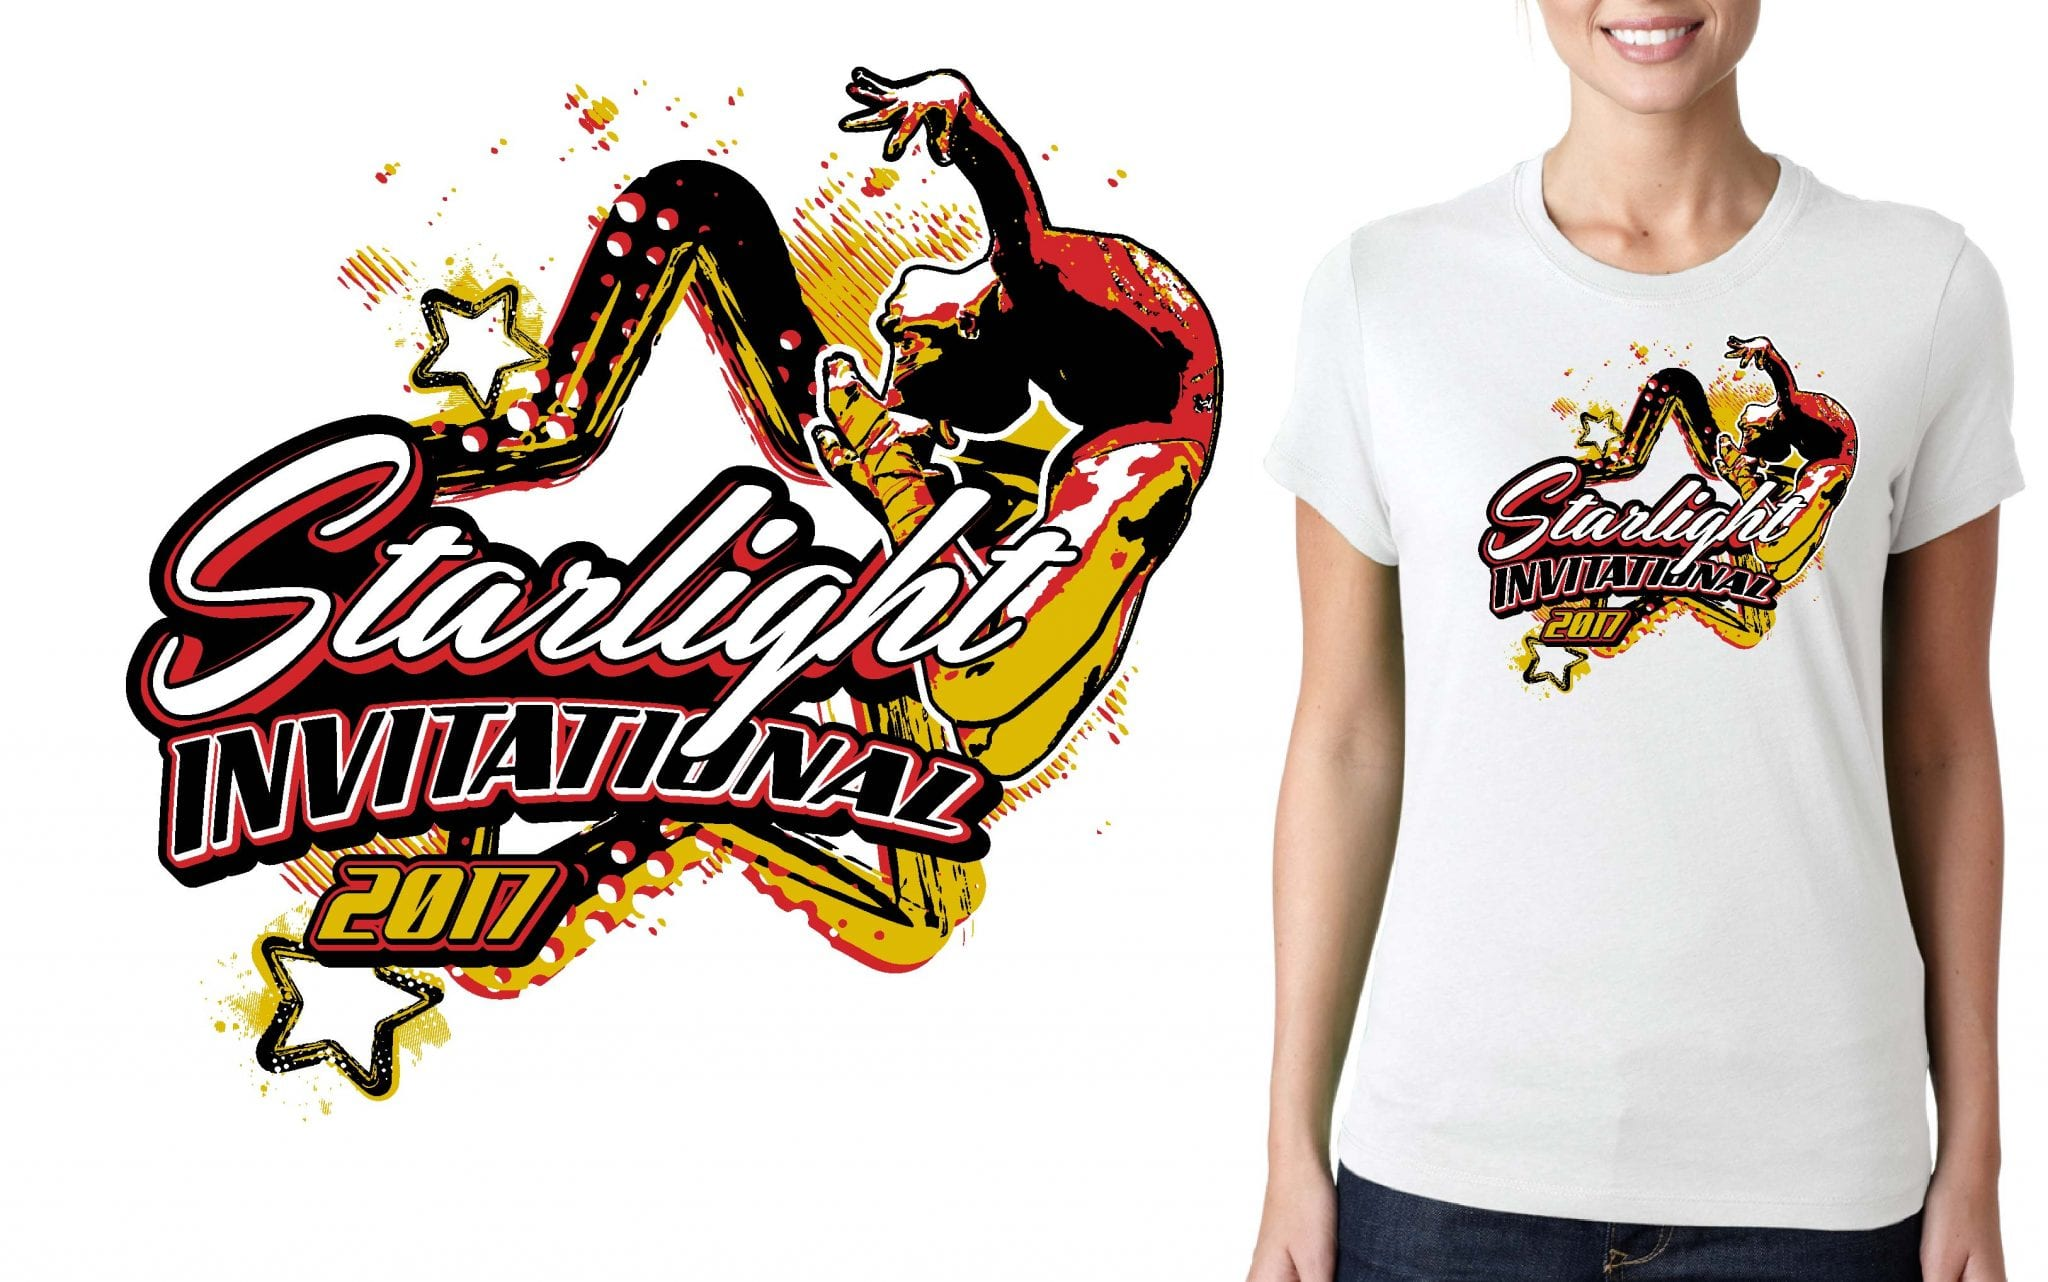 Gymnastics t shirt logo design starlight invitational by Gymnastics t shirt designs